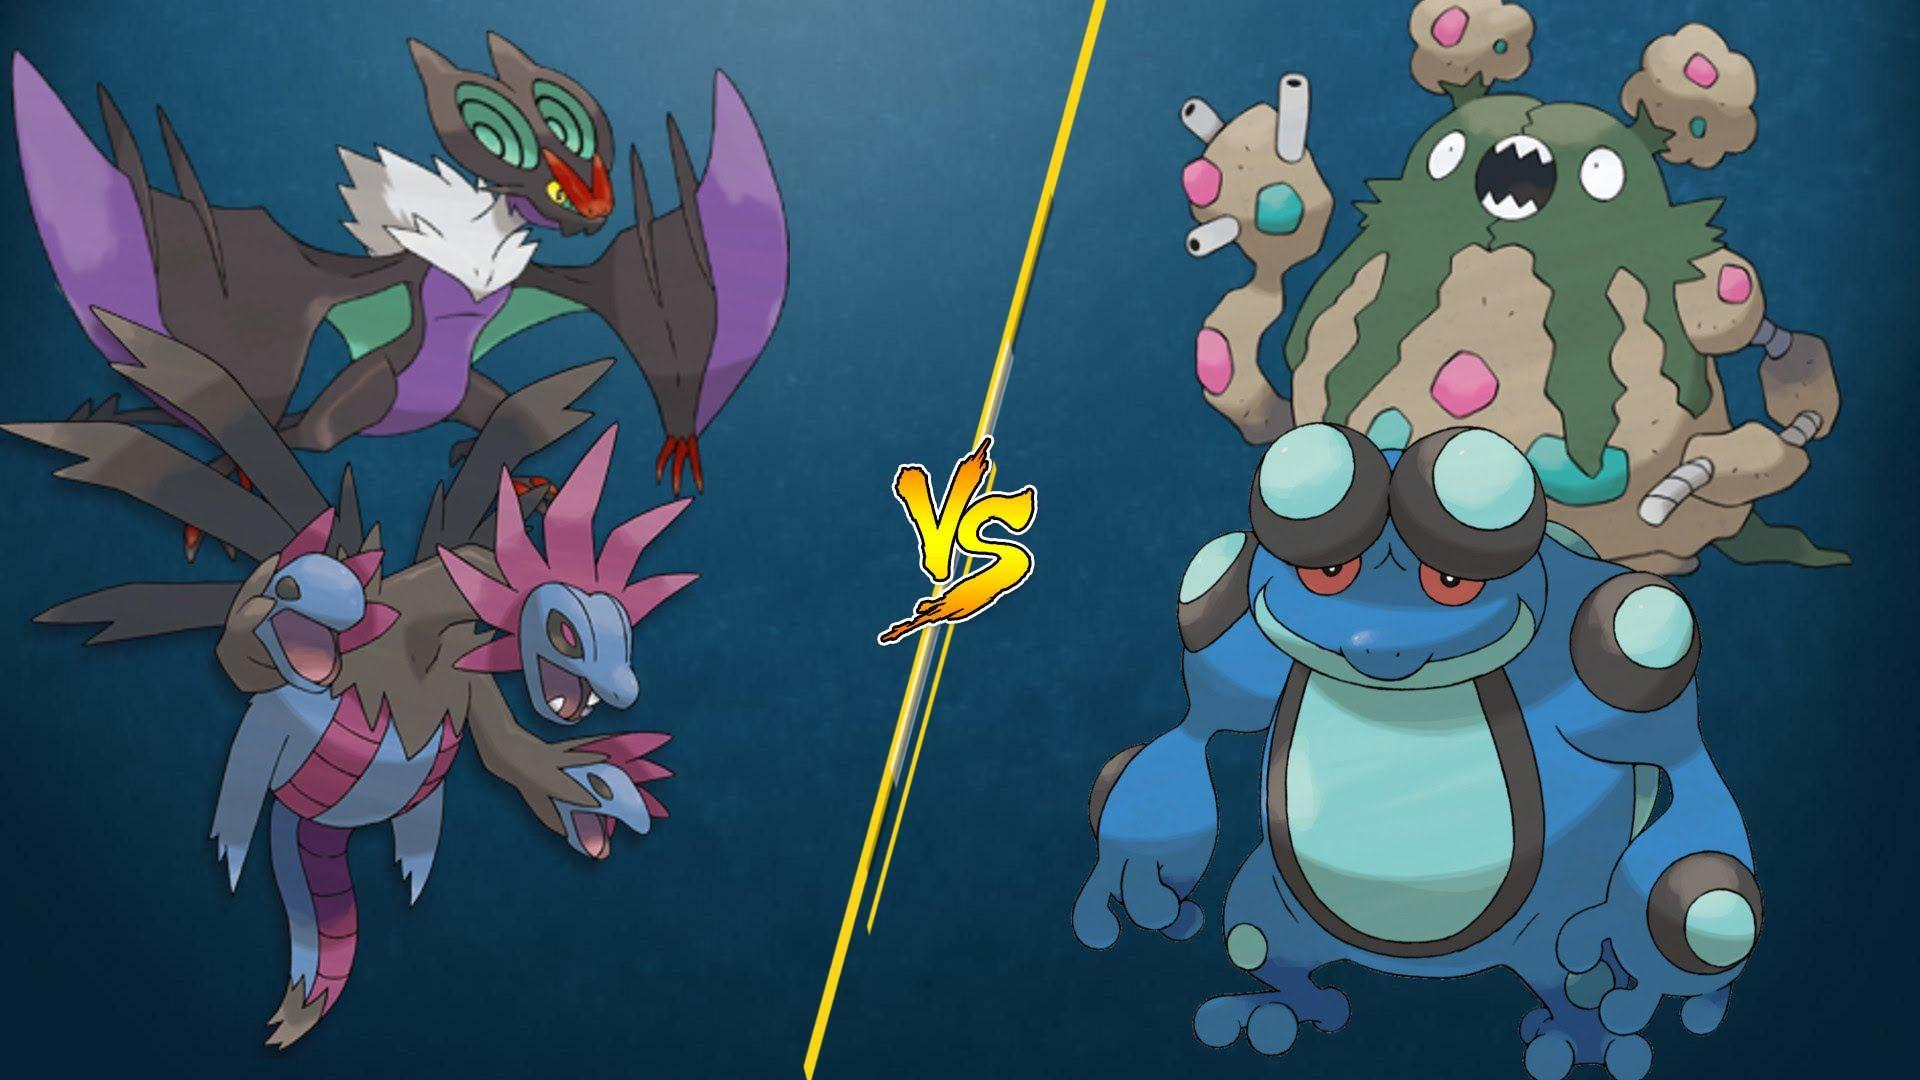 PTCGO Stream Match] Hydreigon/Noivern vs Seismitoad/Garbodor - YouTube